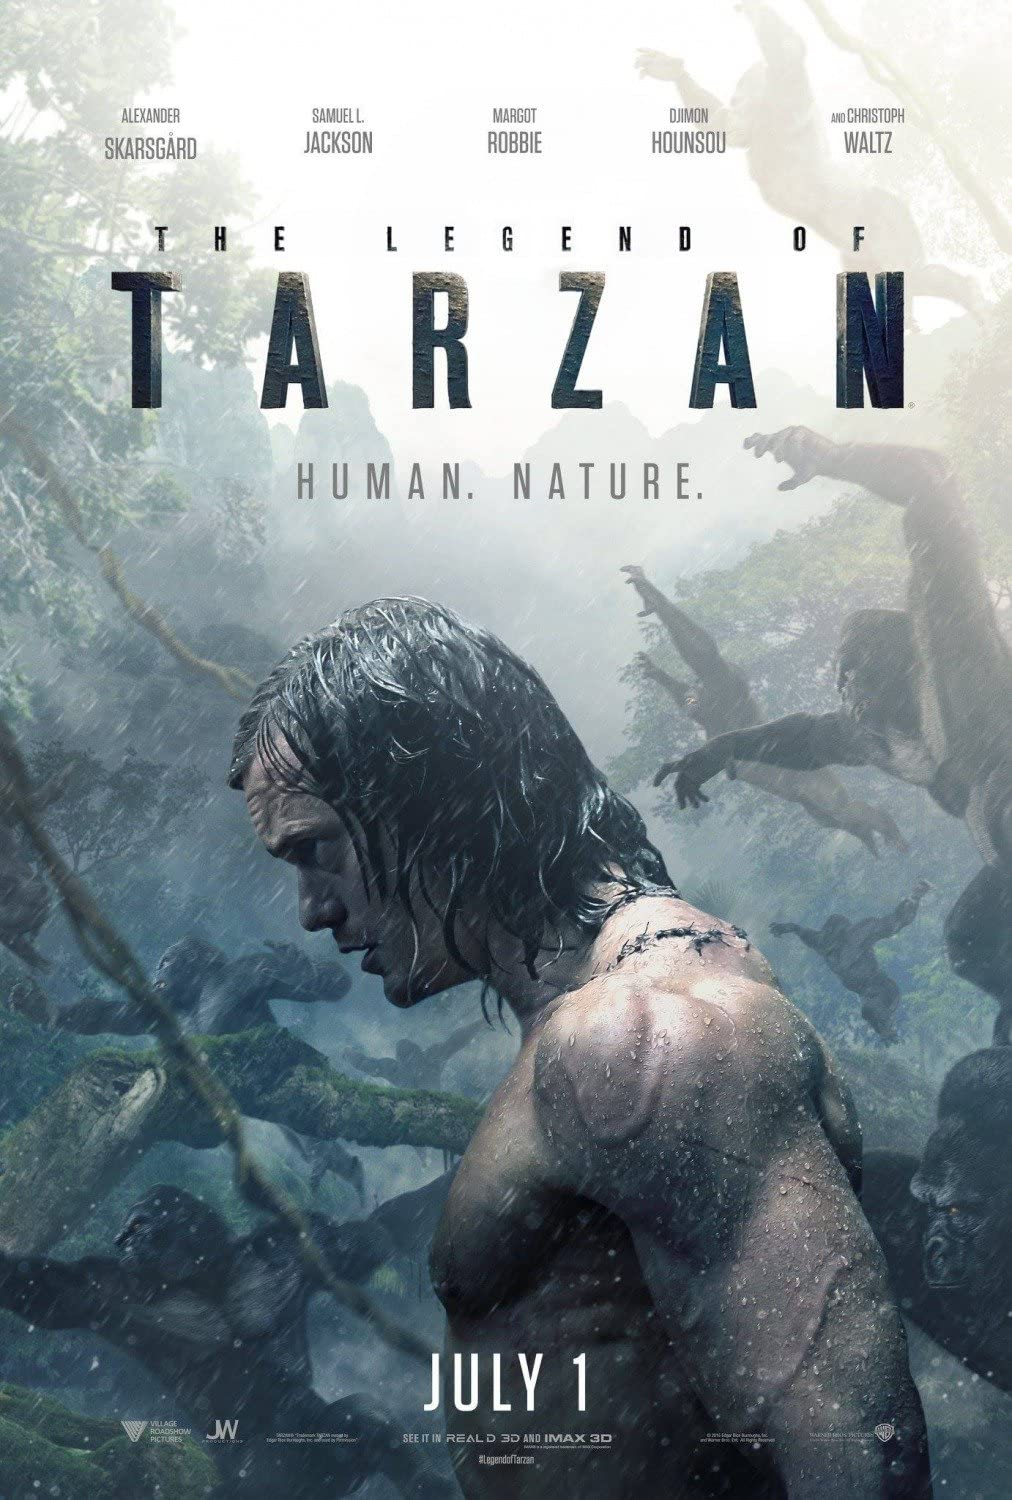 THE LEGEND OF TARZAN Original Movie Poster 27x40 - DS - ADVANCE - ALEXANDER SKARSGARD - MARGOT ROBBIE